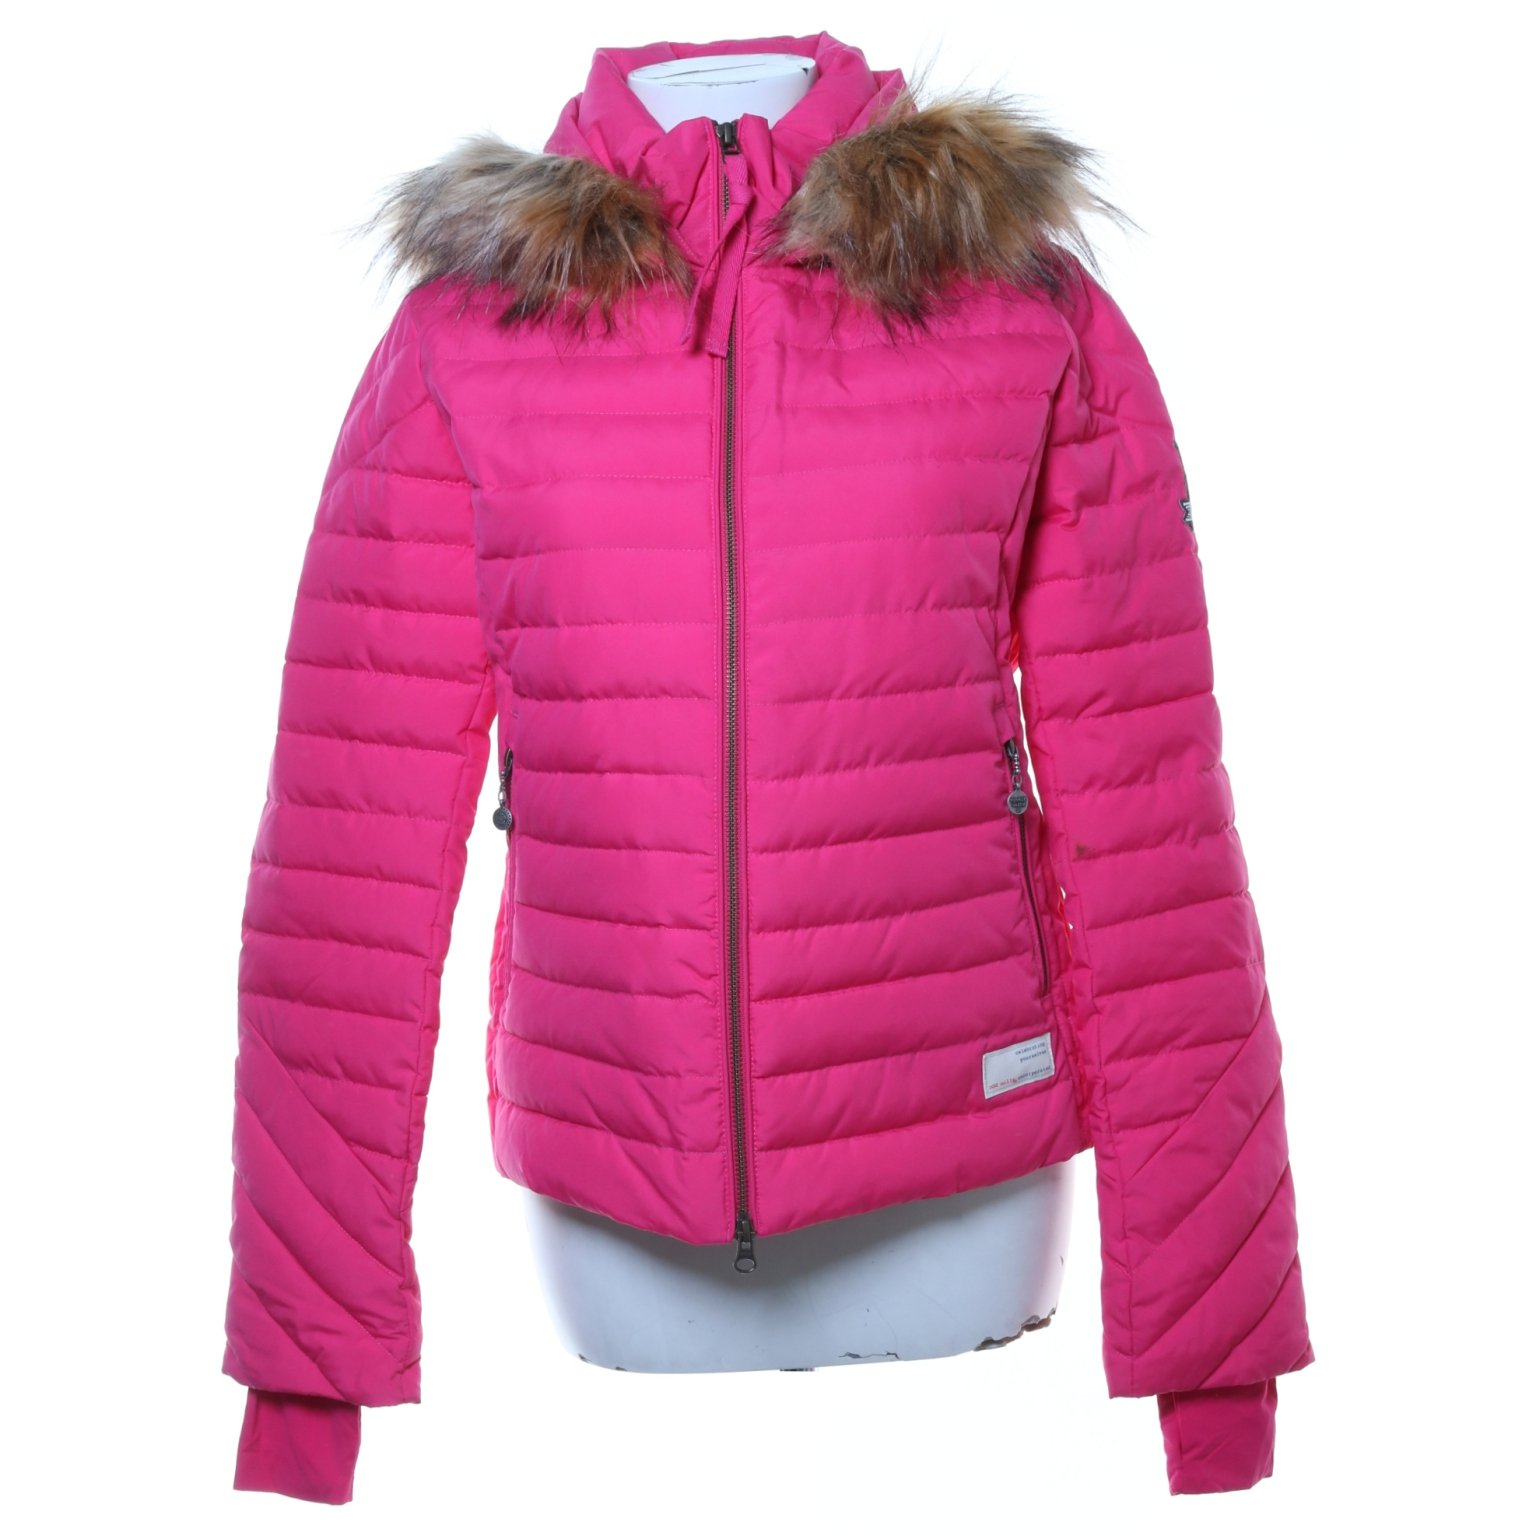 Odd Molly, Vinterjacka, Strl: M, 918M-733 earth saver jacket, Rosa